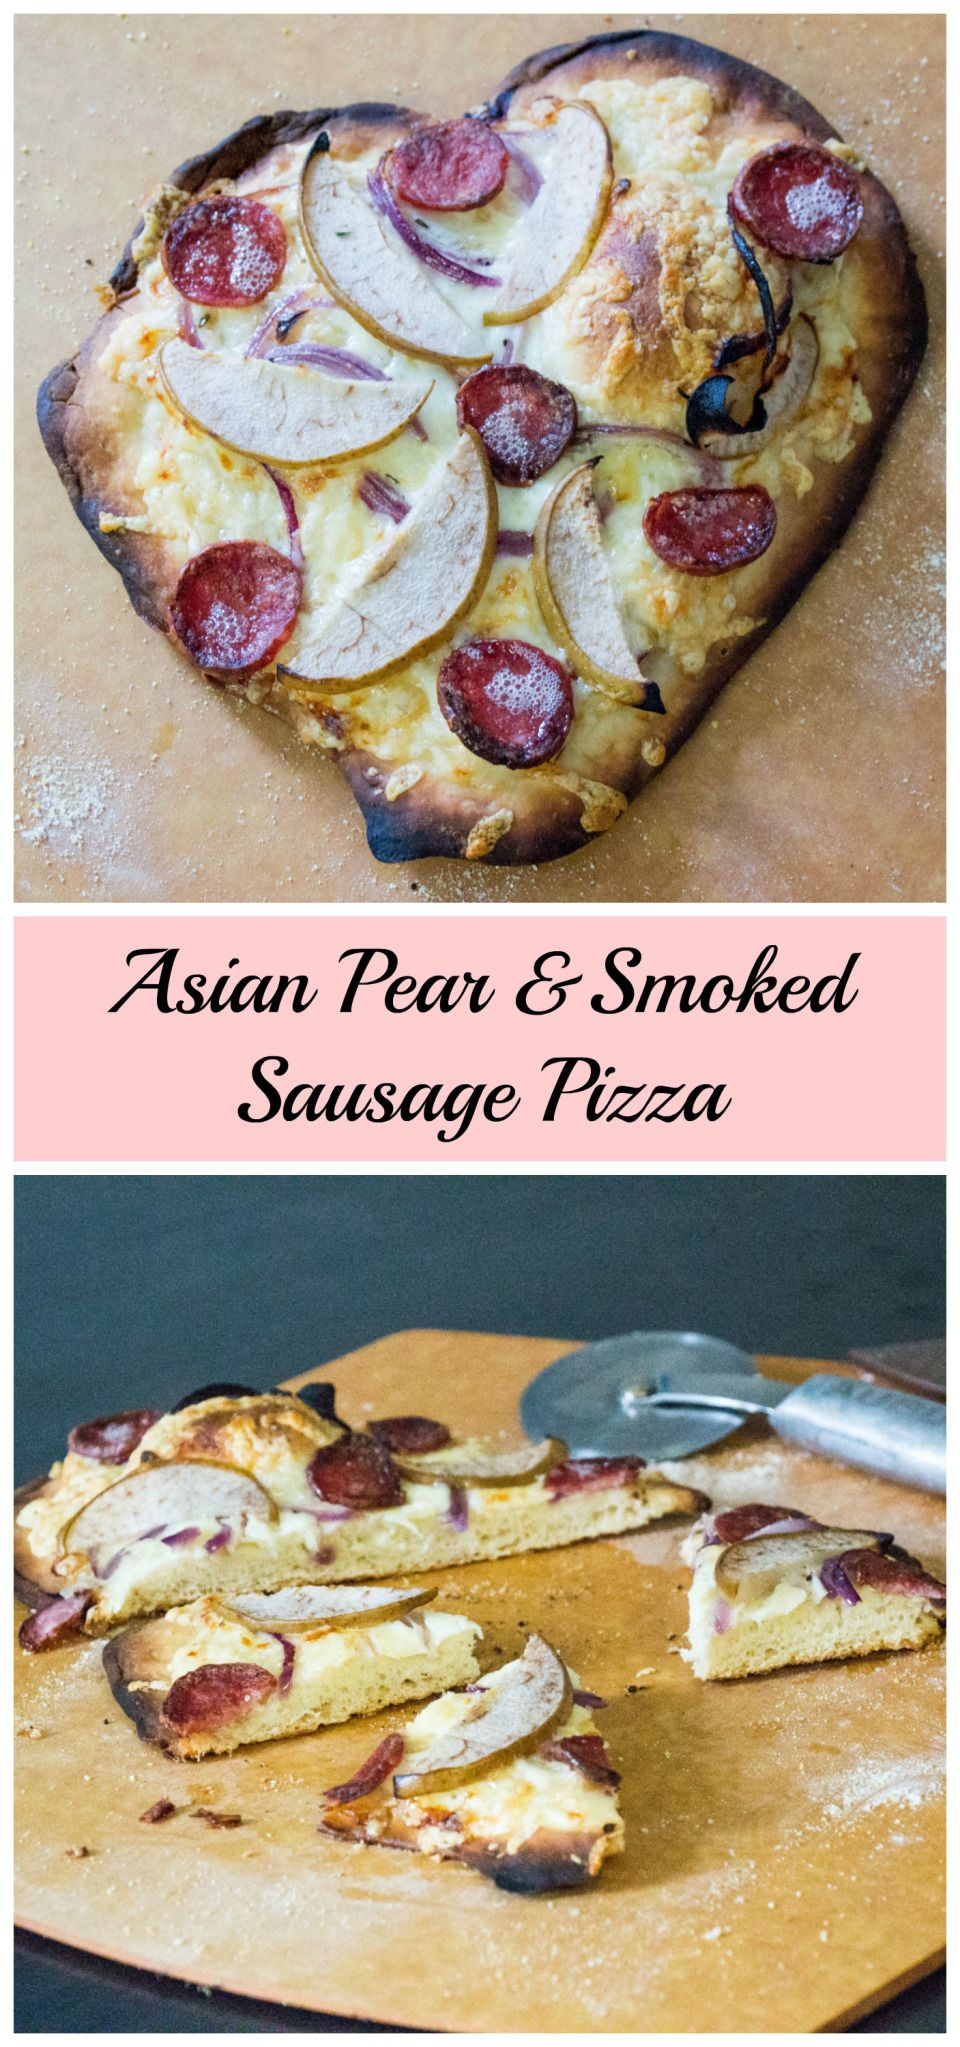 Big sausage pizza asian